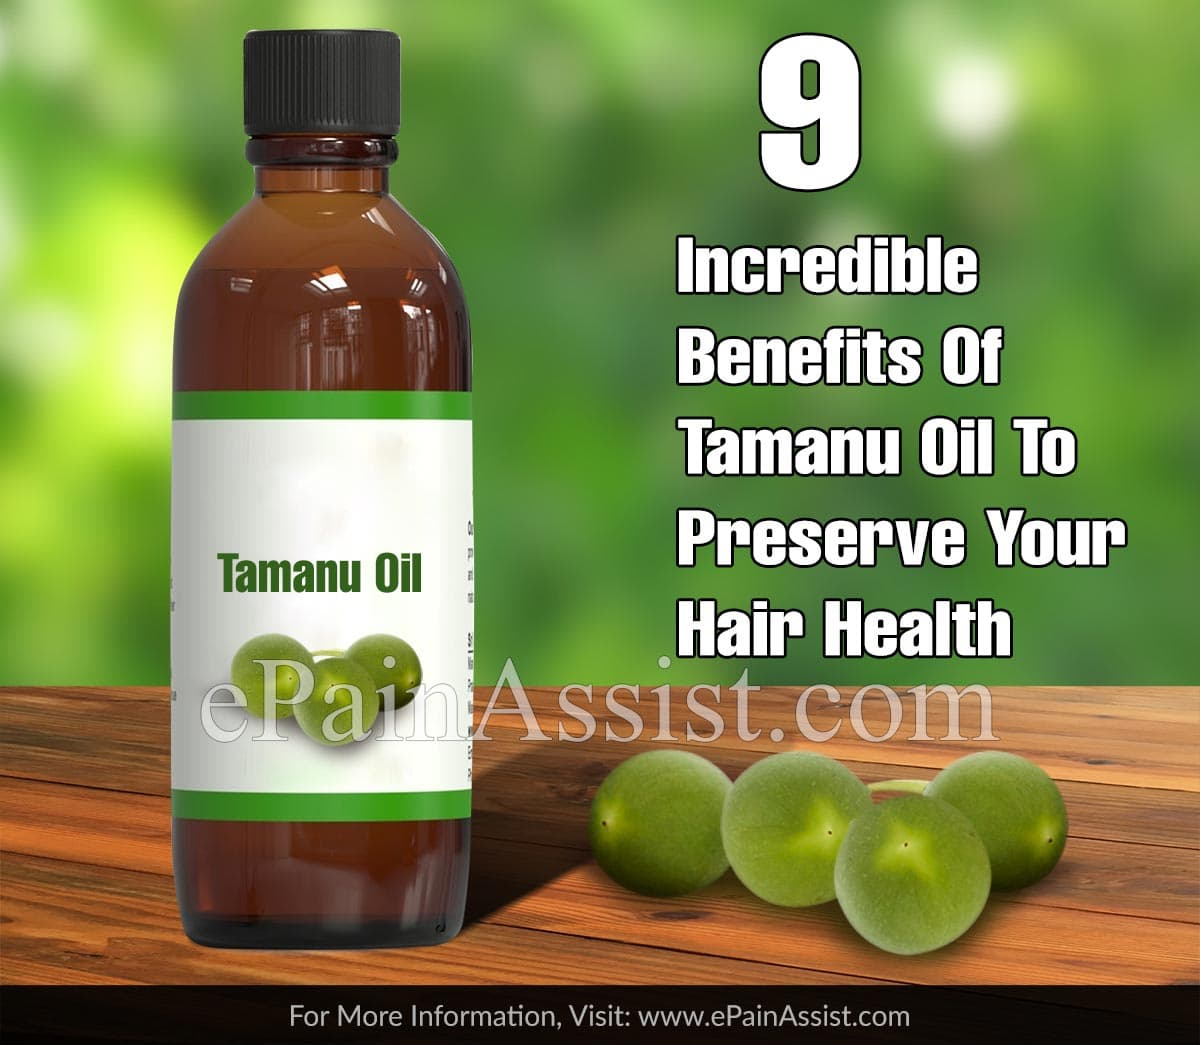 9 Incredible Benefits Of Tamanu Oil To Preserve Your Hair Health